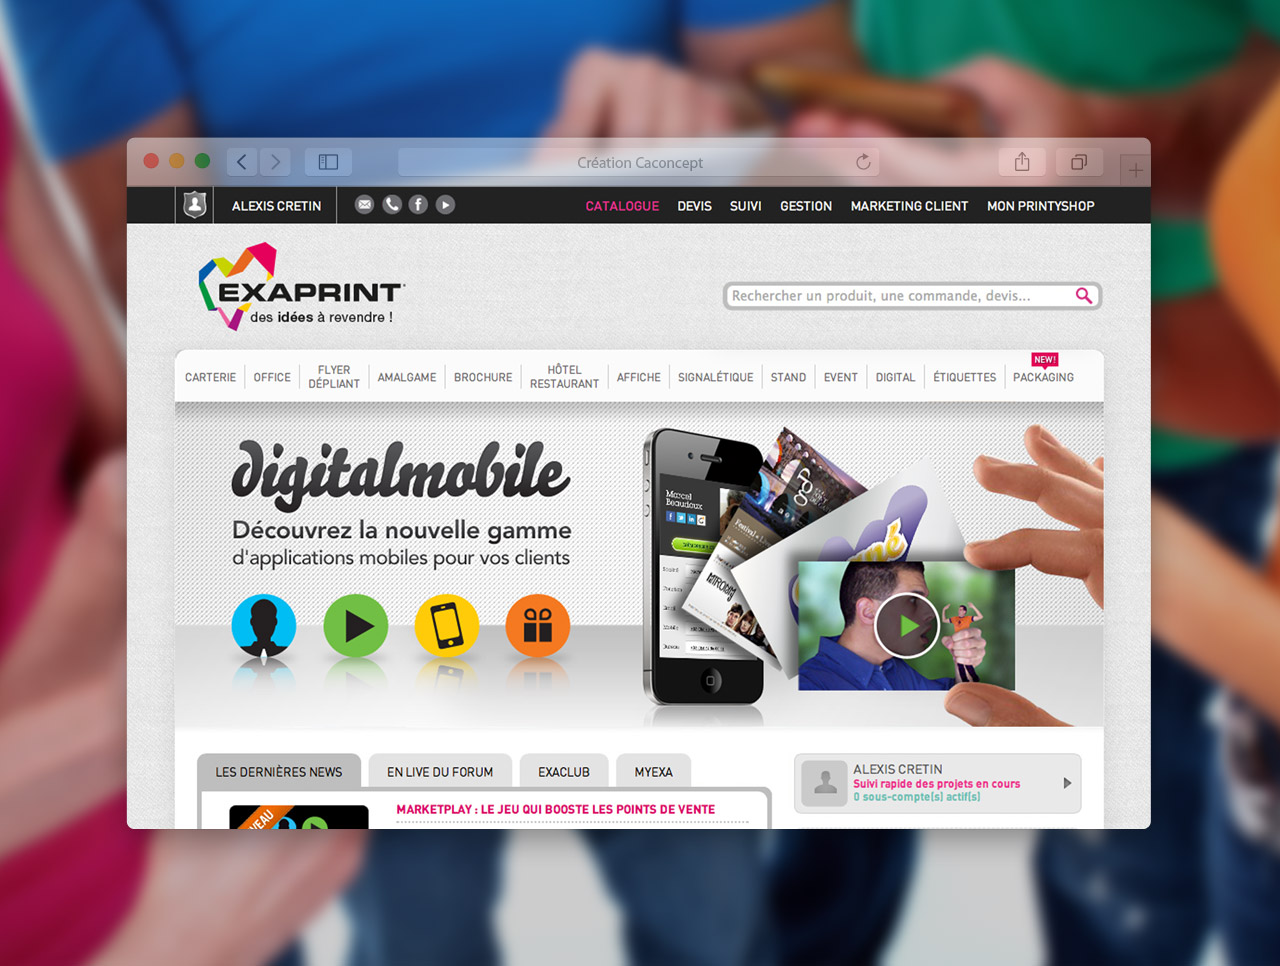 exaprint-digitalmobile-slide-site-exaprint-creation-communication-caconcept-alexis-cretin-graphiste